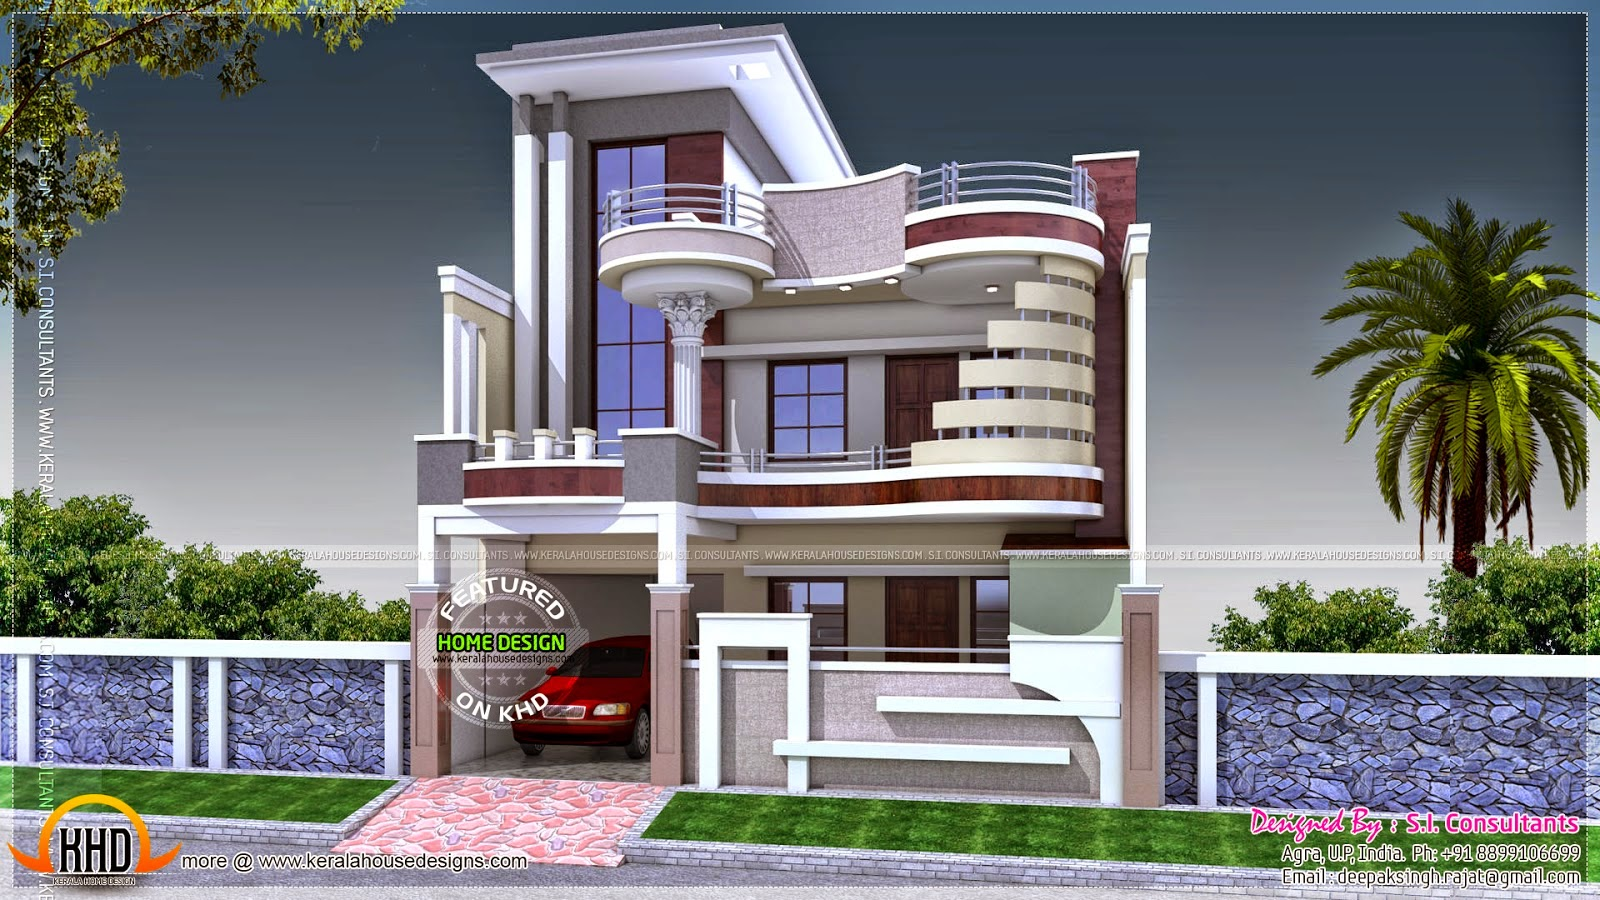 Tropicalizer indian house design for Indian house model